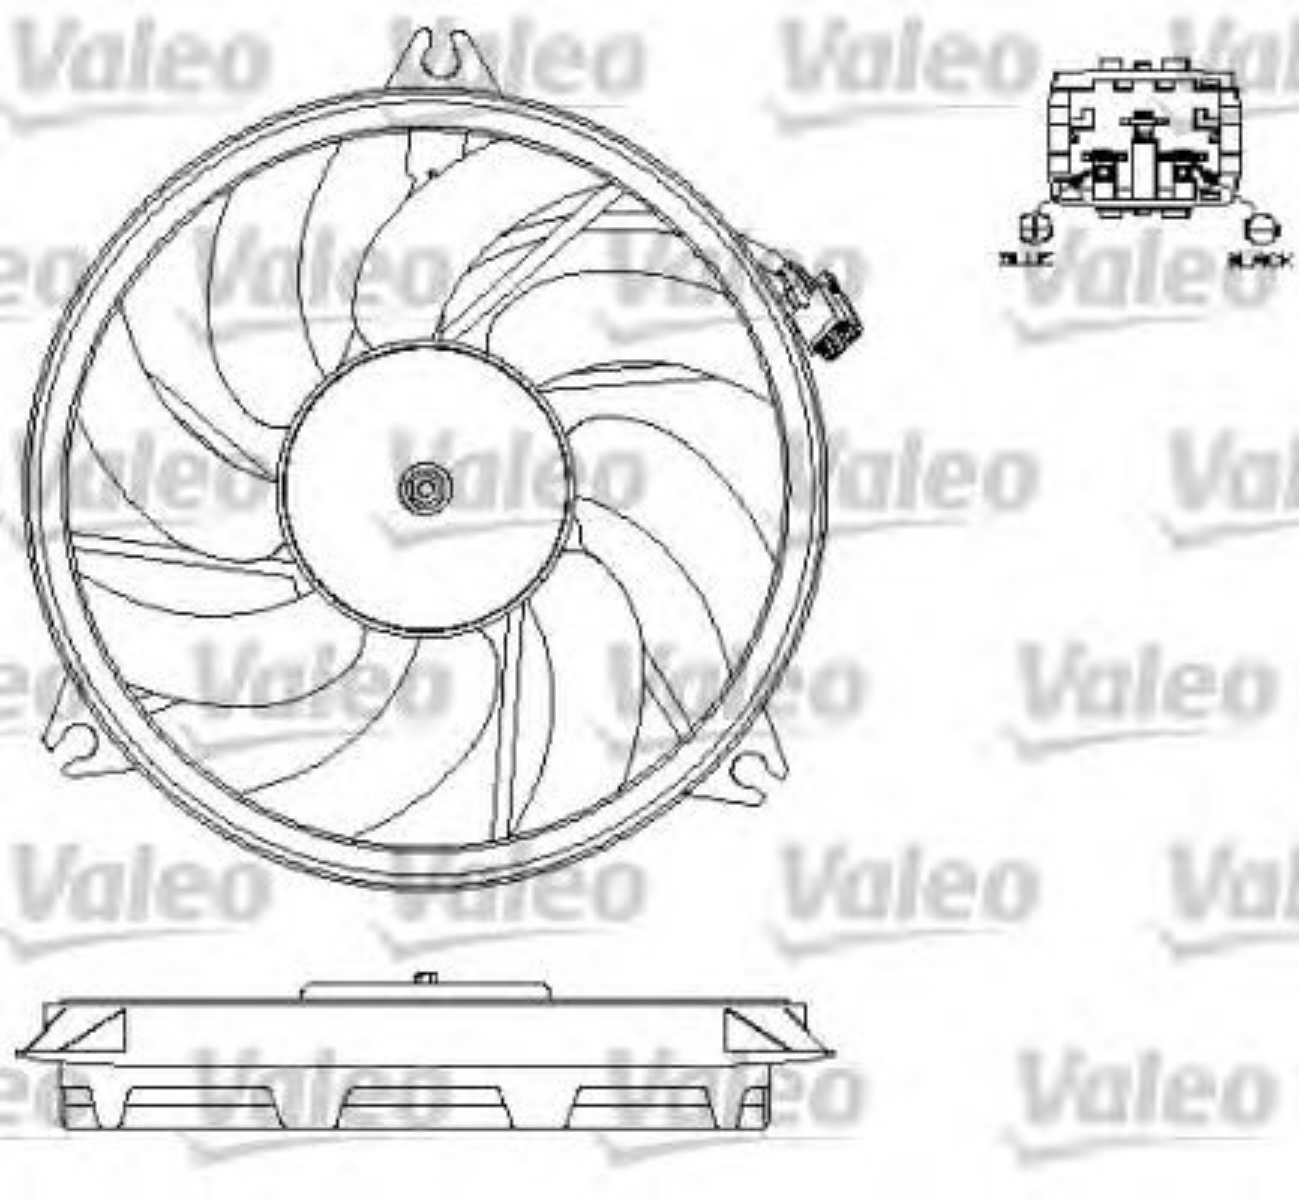 VALEO Radiator Fan Peugeot 206 1.4 HDI Eco 70,1.1